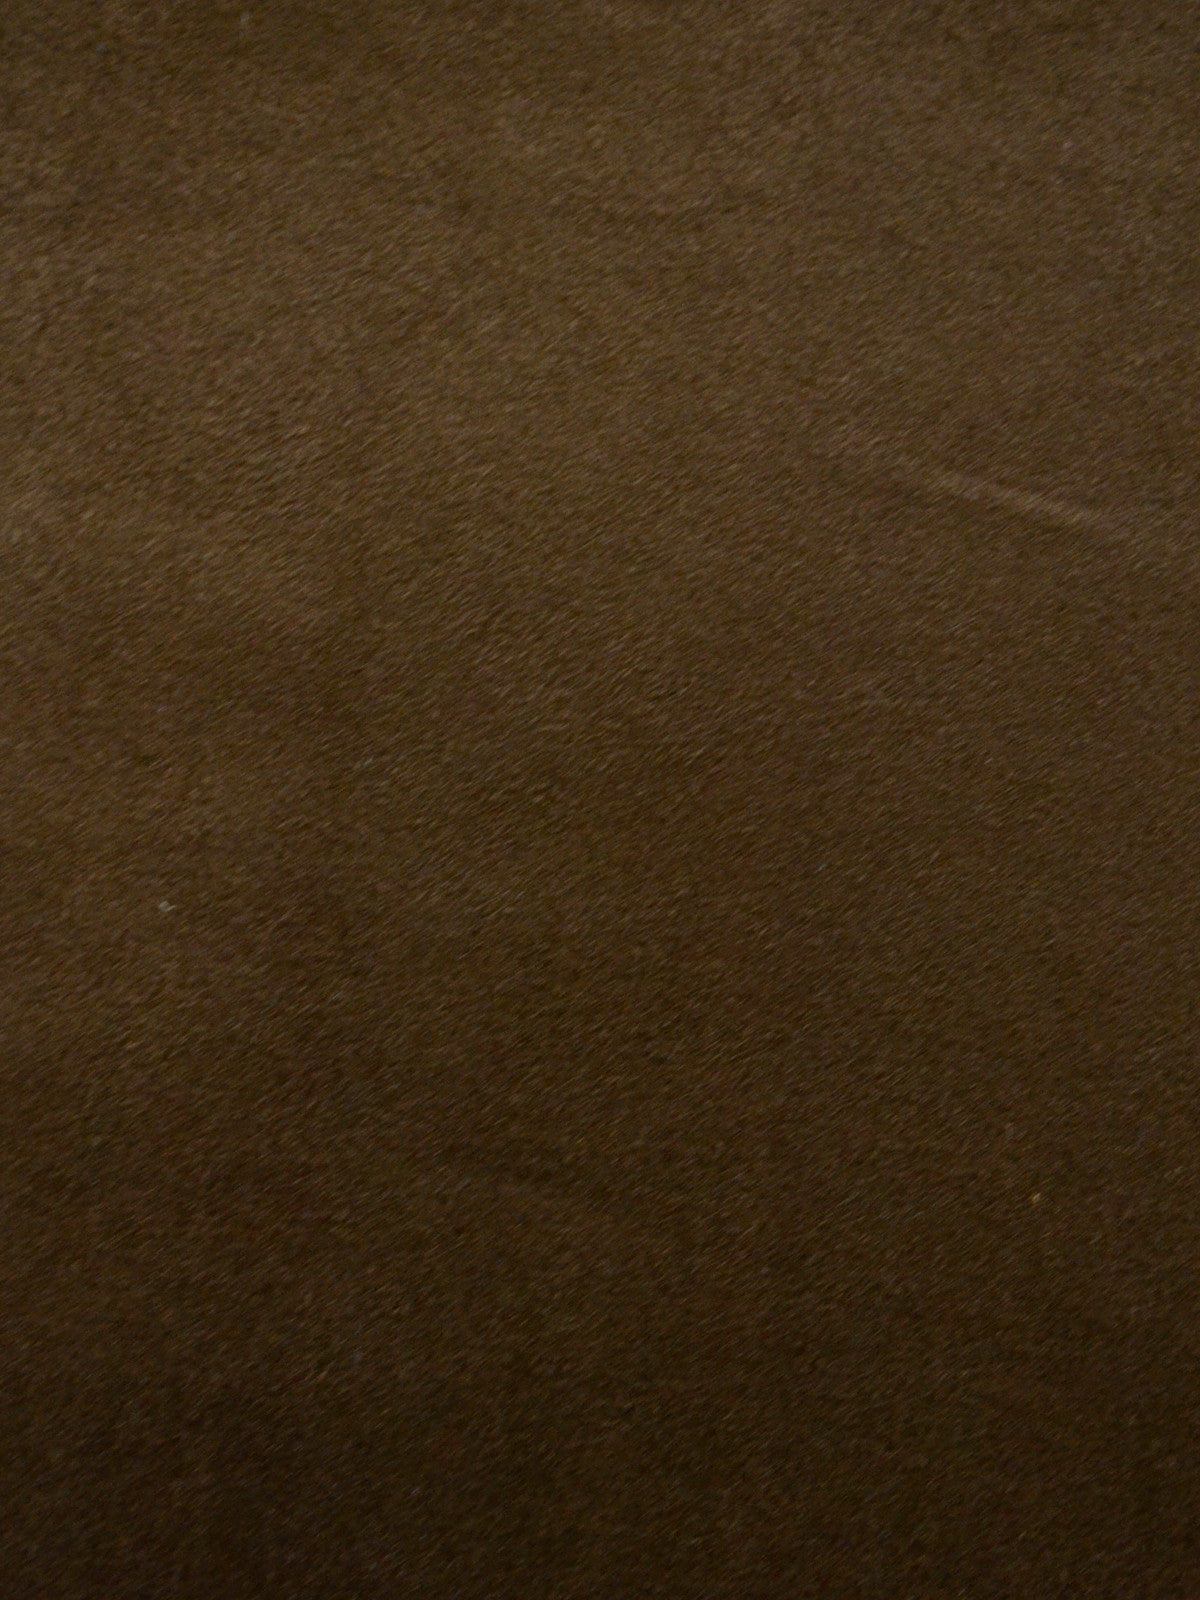 chocolate faux suede, chocolate microfiber, best atlanta fabric store